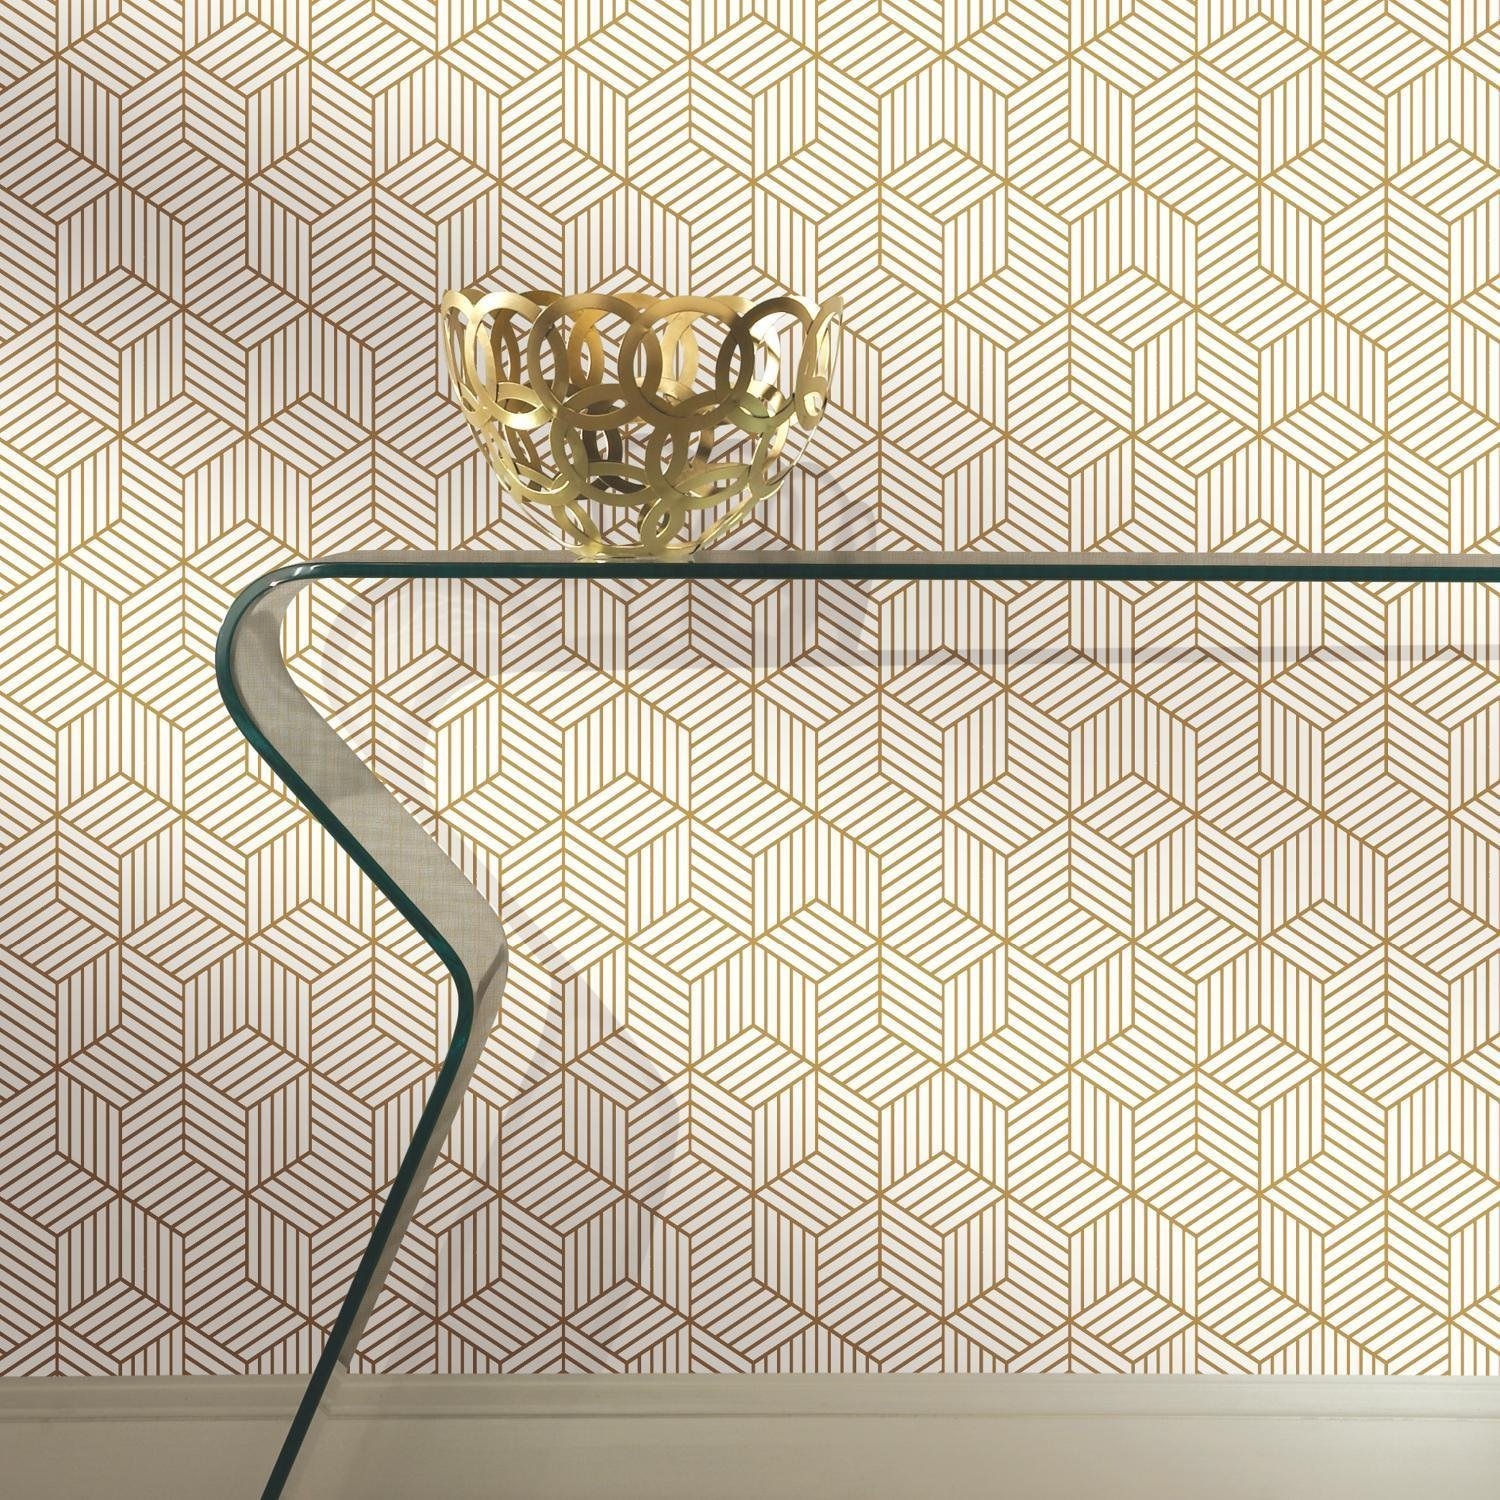 RoomMates Gold and White Stripped Hexagon Peel and Stick Wallpaper 1500x1500